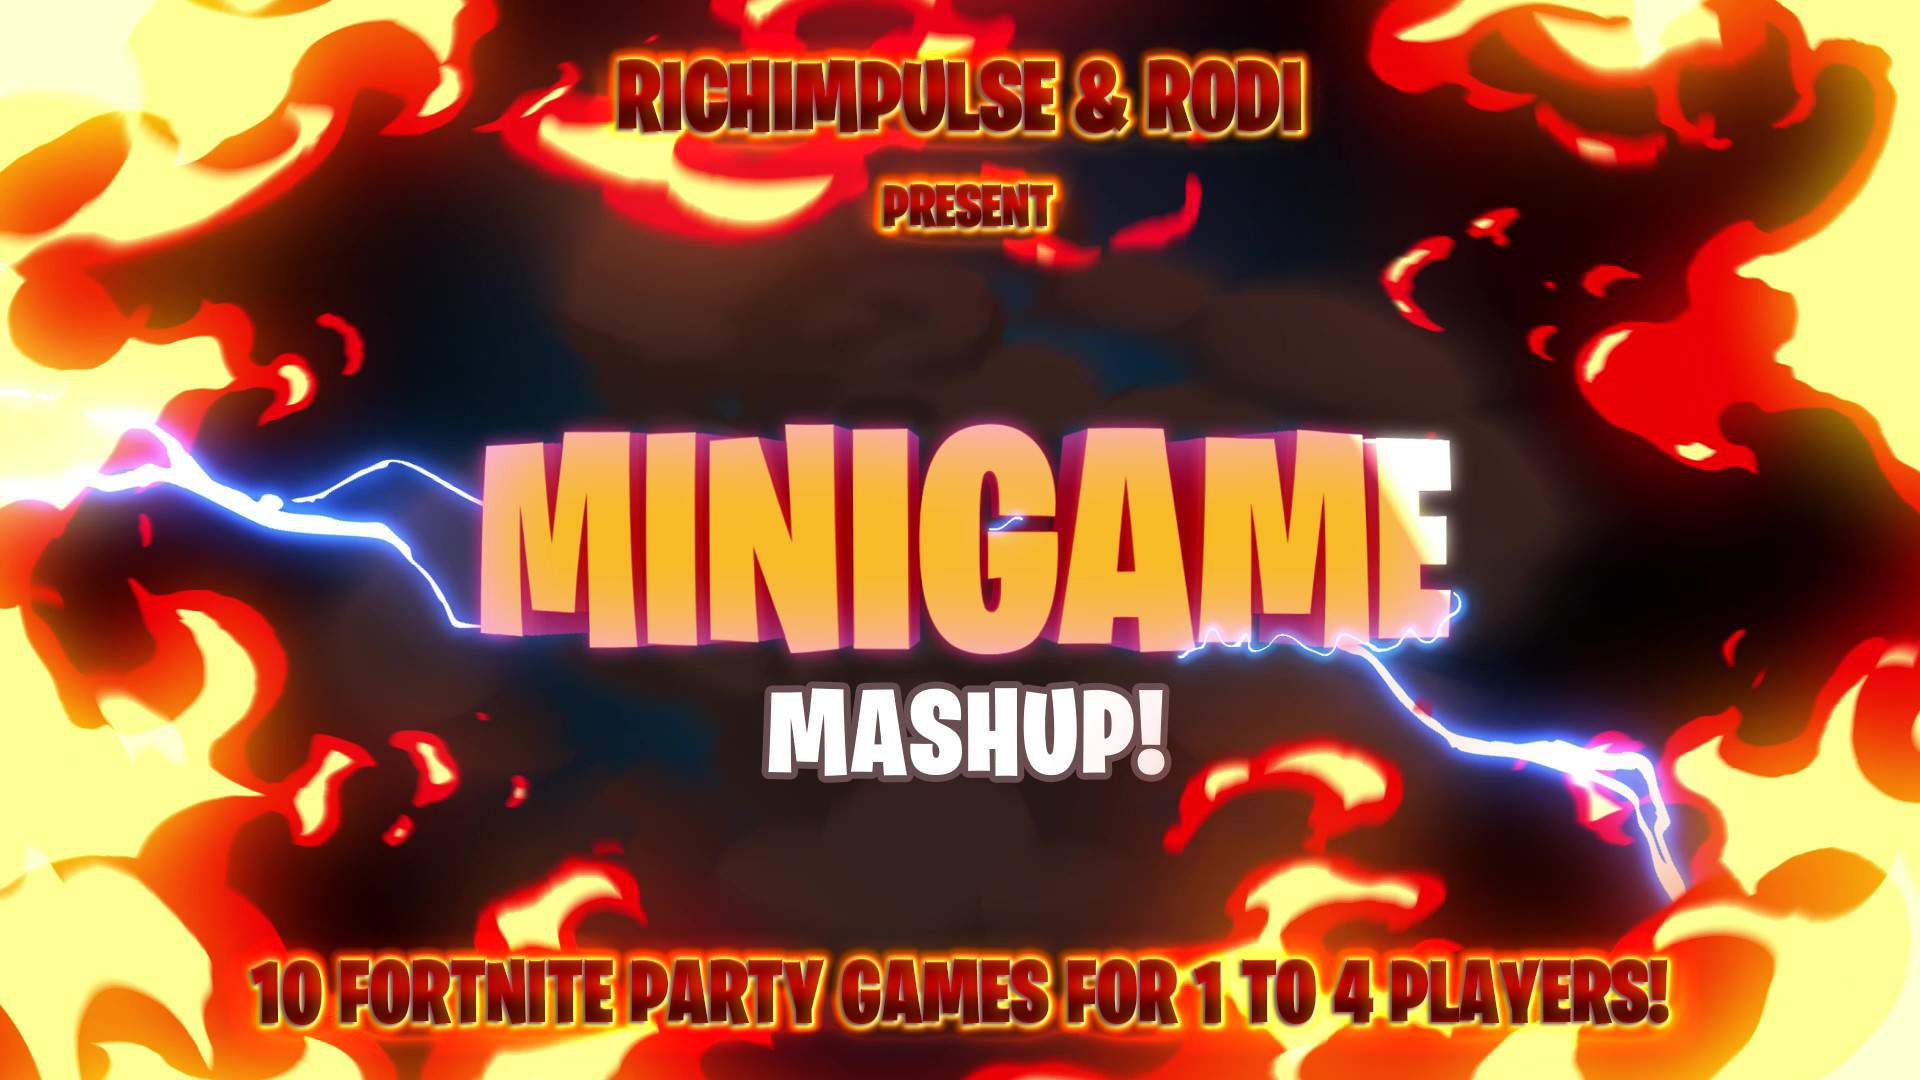 MINI GAME MASHUP!